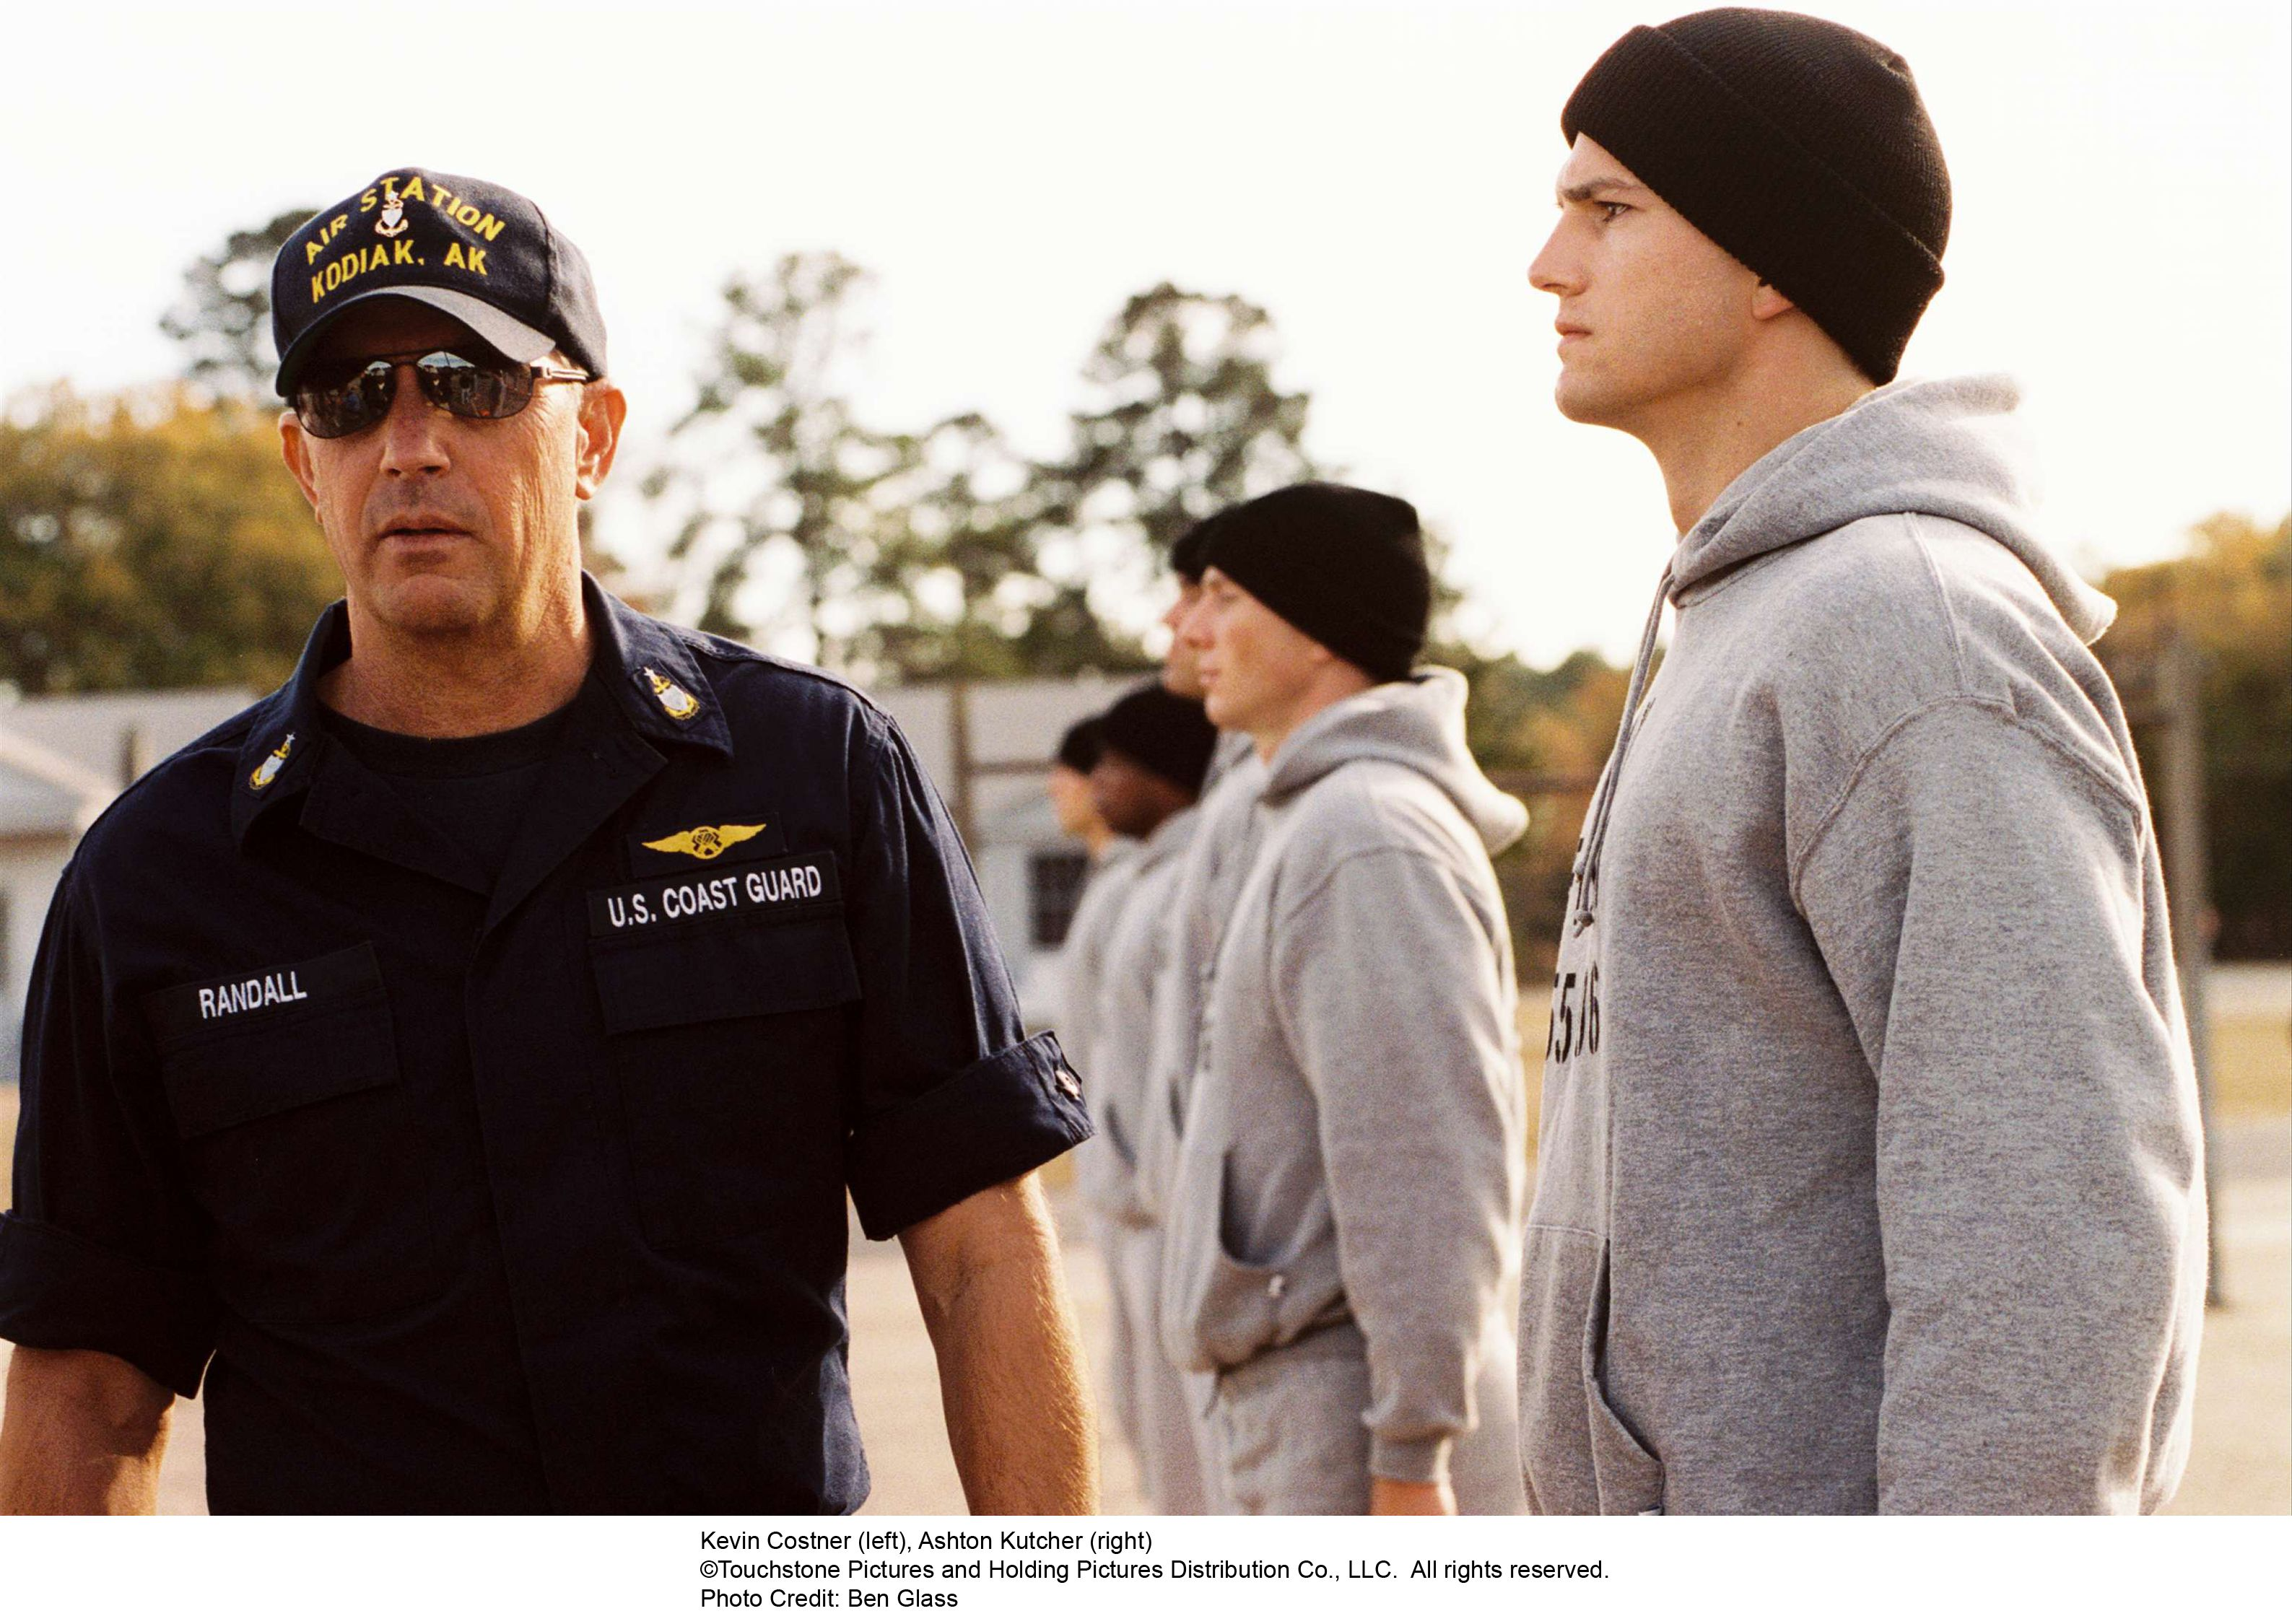 Pin by Dexter Hall on US Coast Guard Kevin costner